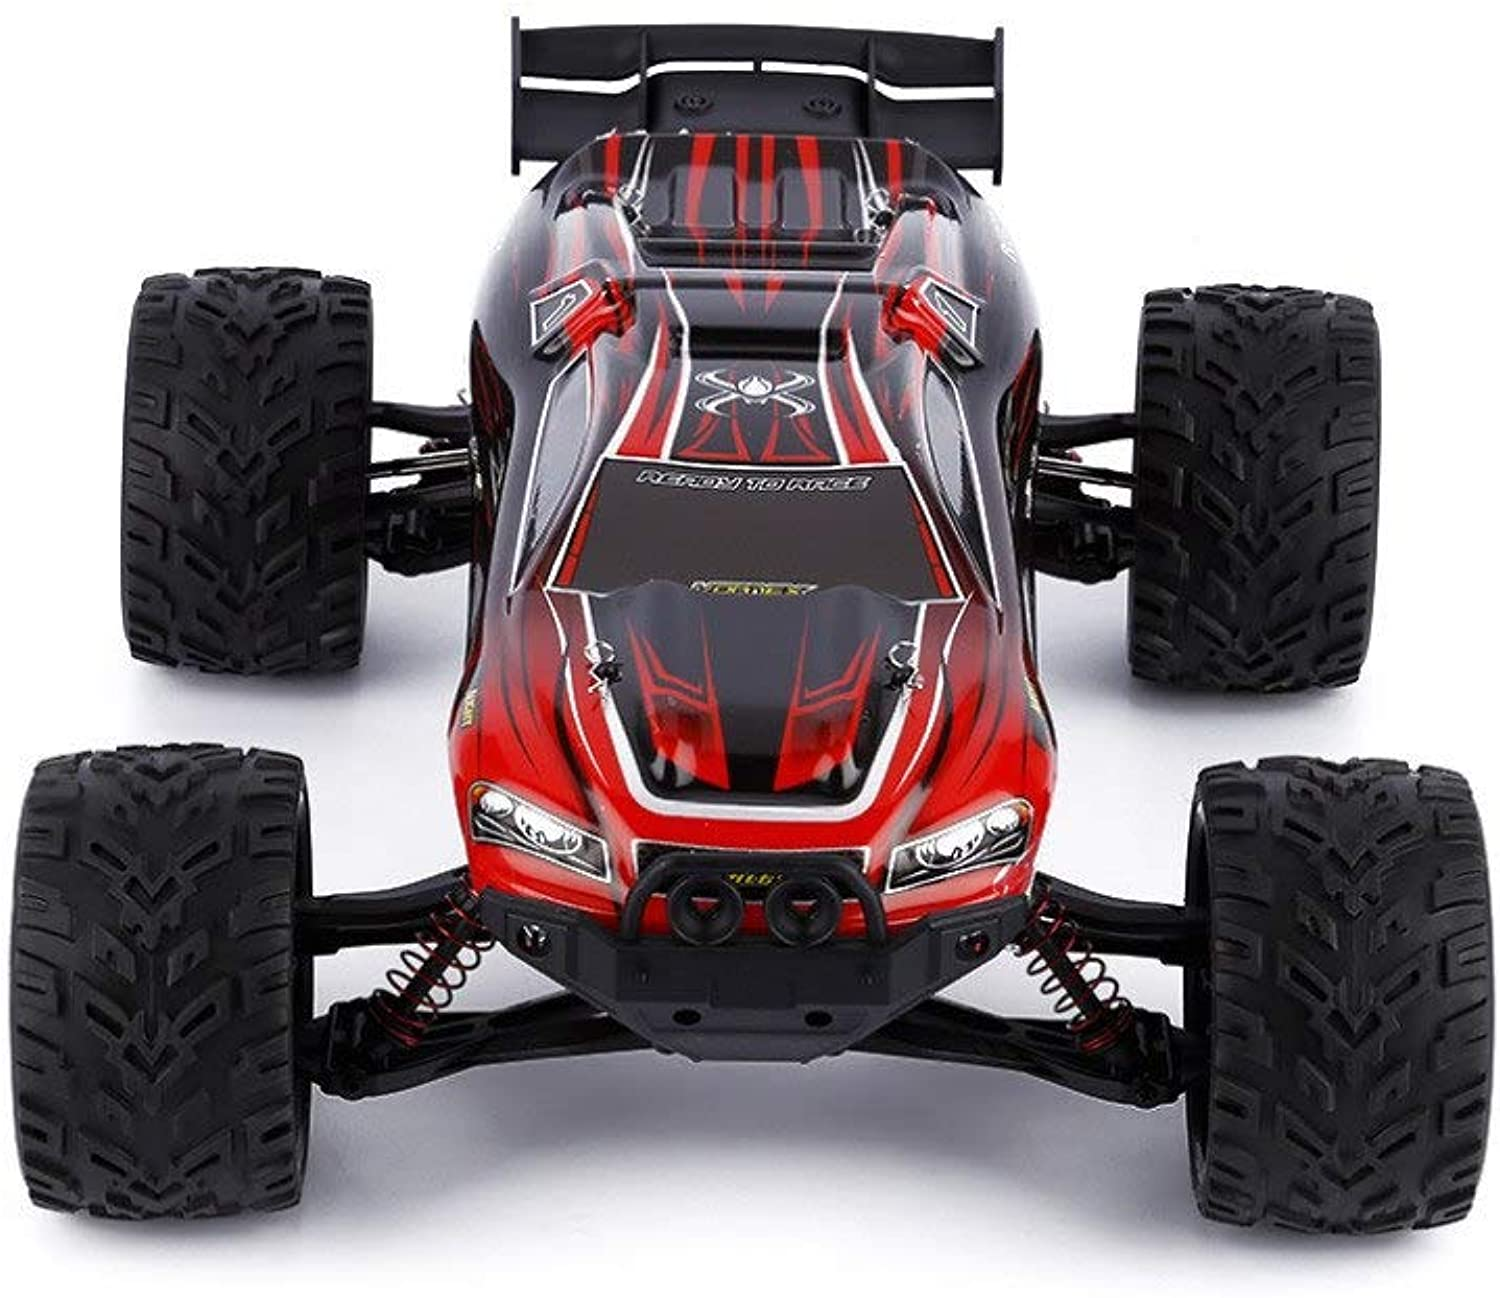 Generic 2017 New Brand and 1 12 2wd 6ch High Speed S912 Gp Brush Remote Control Truck Car Hot